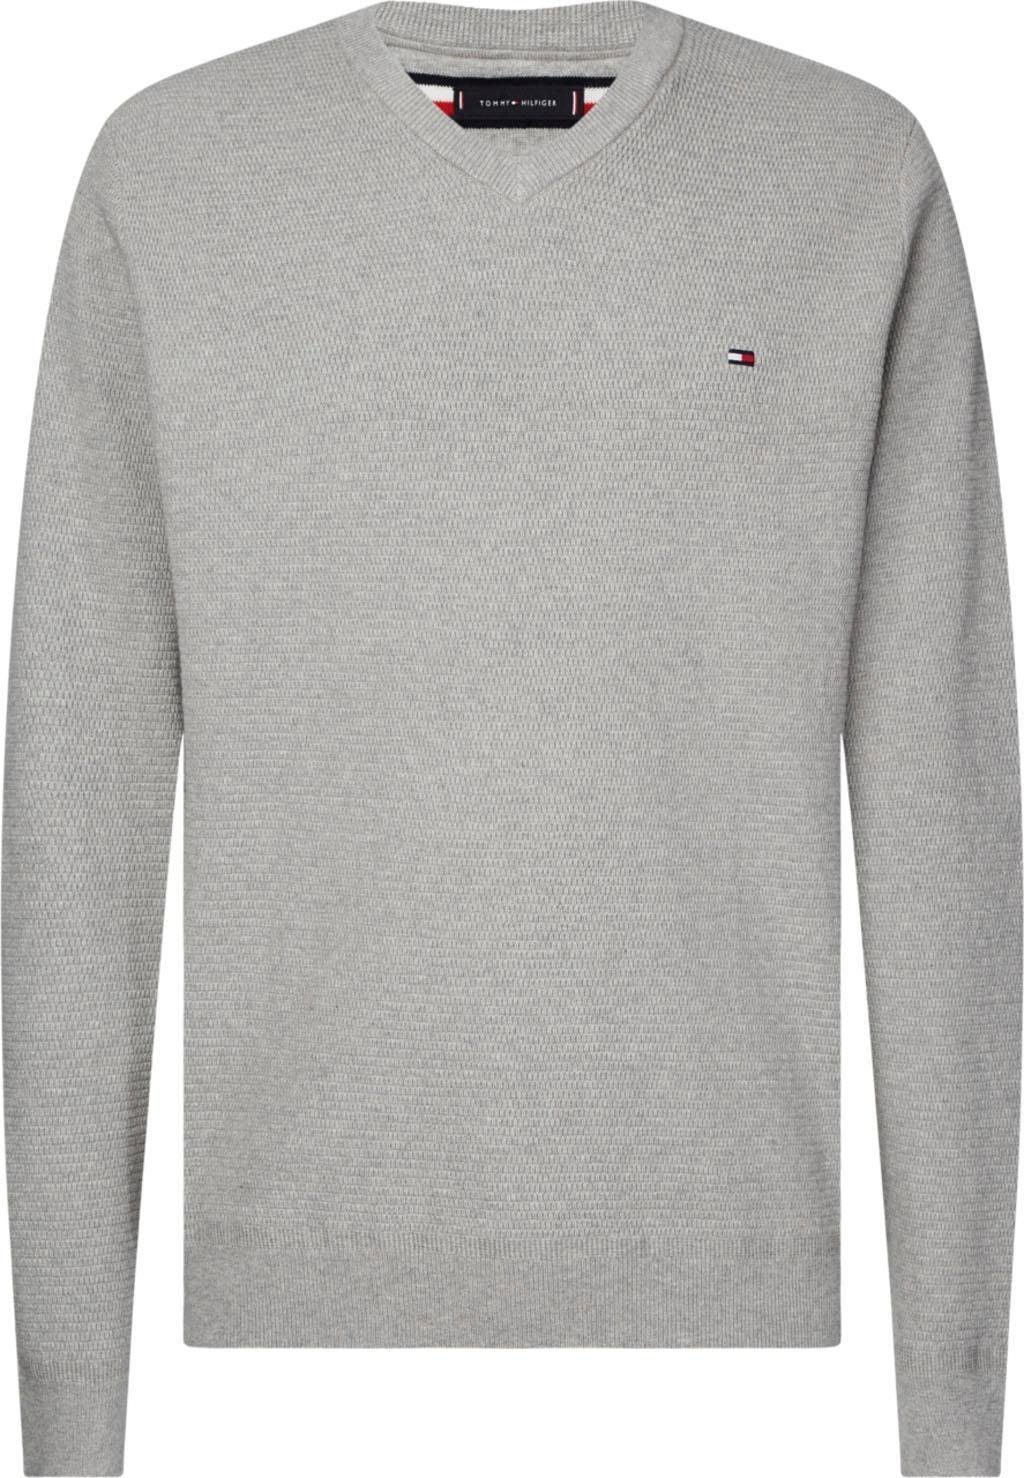 Tommy Hilfiger Big & Tall V Ausschnitt Pullover »Big & Tall COTTON STRUCTURED V NK« online kaufen | OTTO